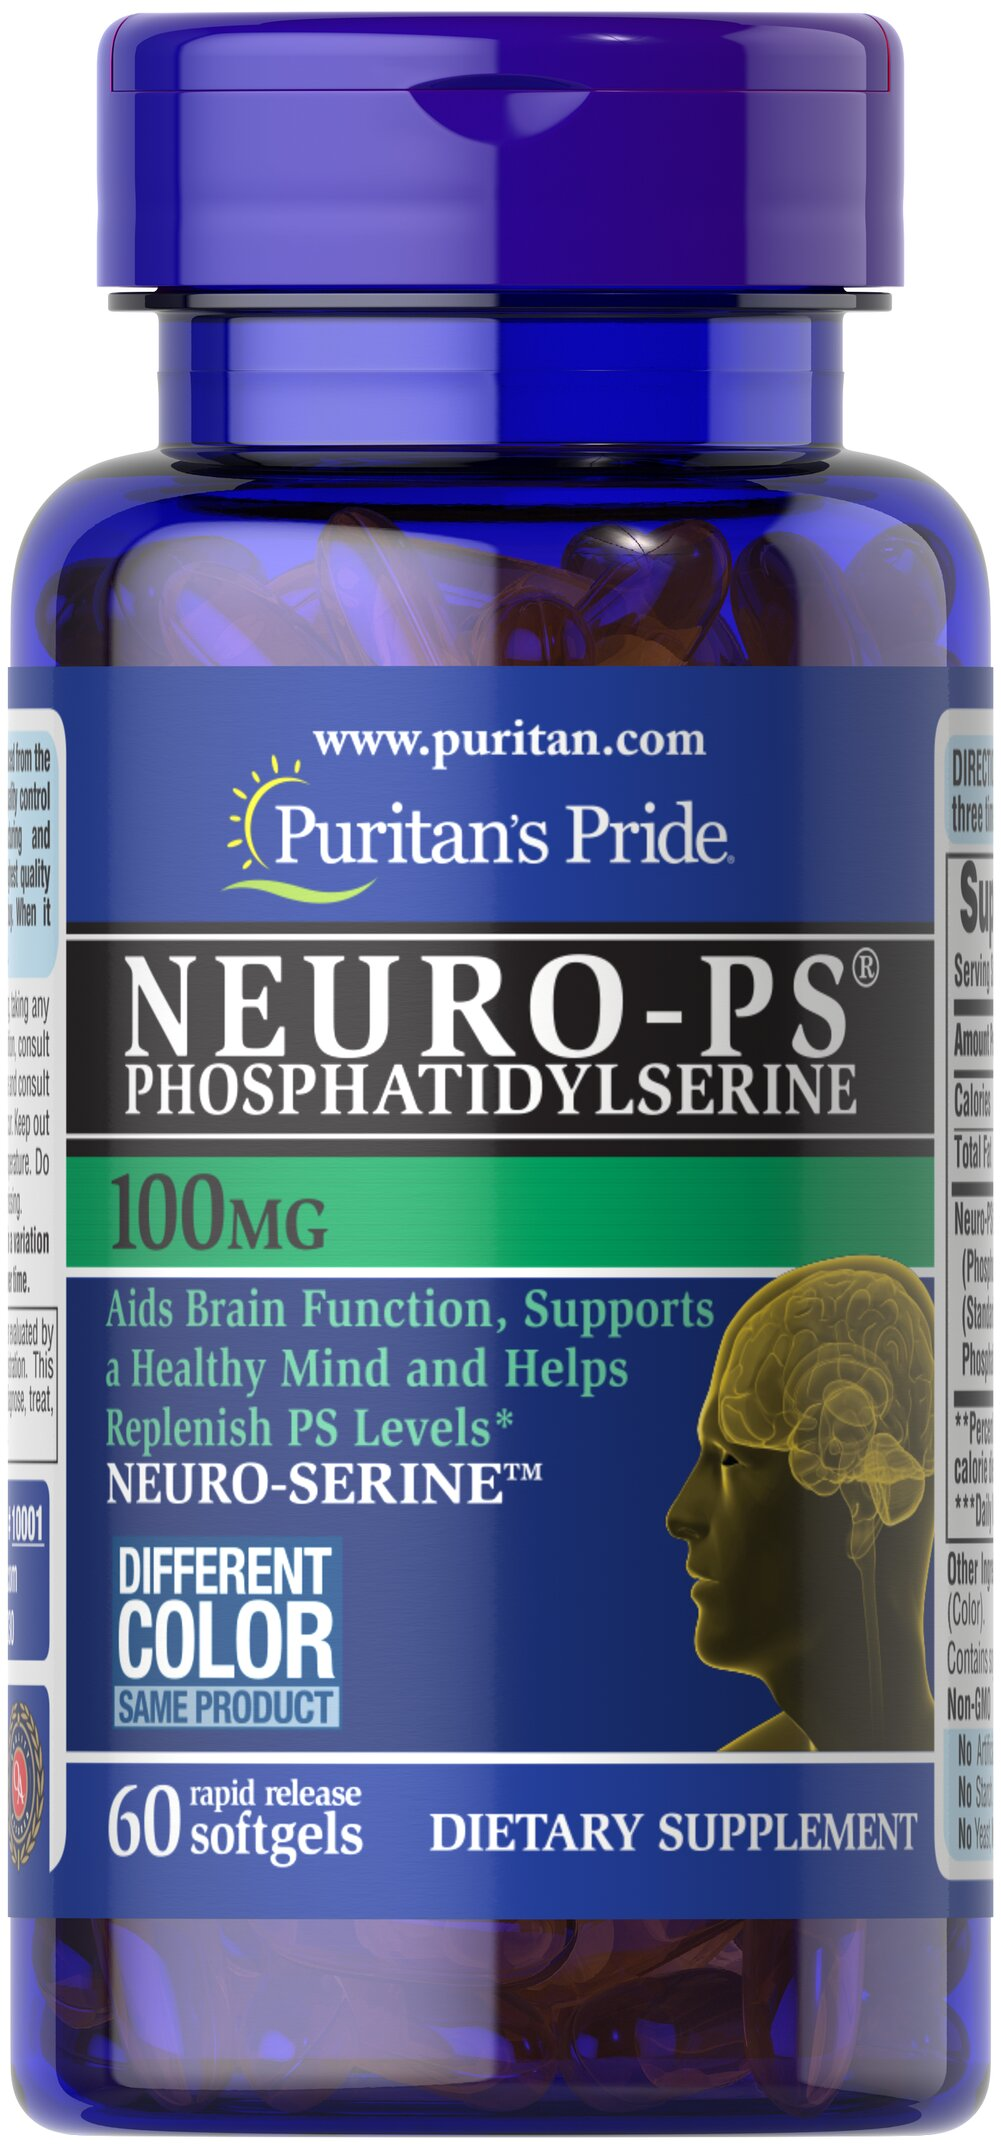 Neuro-Ps (Phosphatidylserine) 100 mg <p>• 300mg PS per serving<br /><br />Phosphatidylserine (PS), is a natural substance found in brain cell membranes.** Phosphatidylserine levels in the brain can decline with age, so it is important to supplement with Neuro-PS® every day to aid brain function and support a healthy mind.** Very limited and preliminary scientific research suggests that PS may reduce the risk of cognitive dysfunction in the elderly. FDA concludes that there